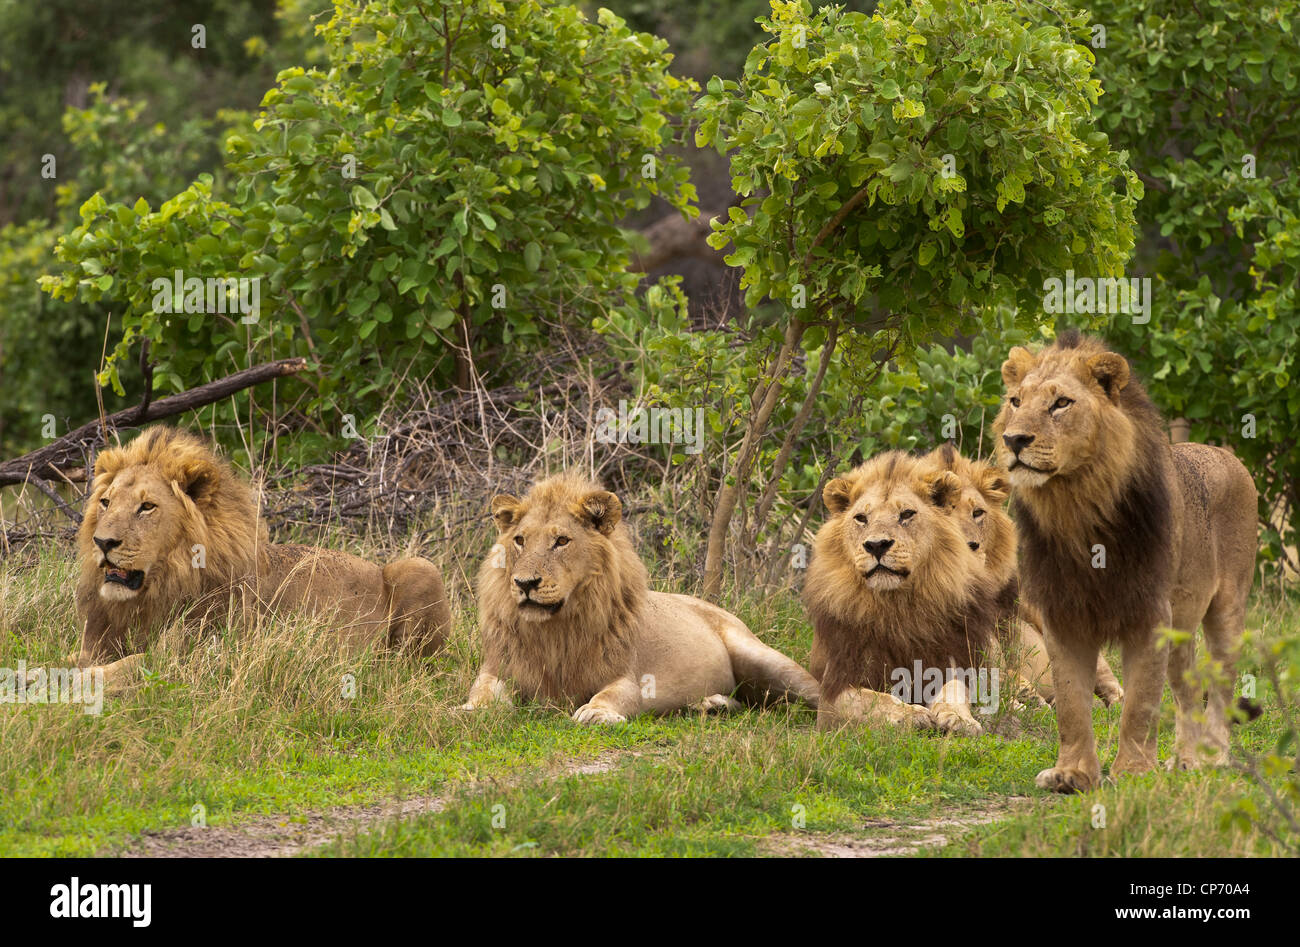 Lions In A Group 91